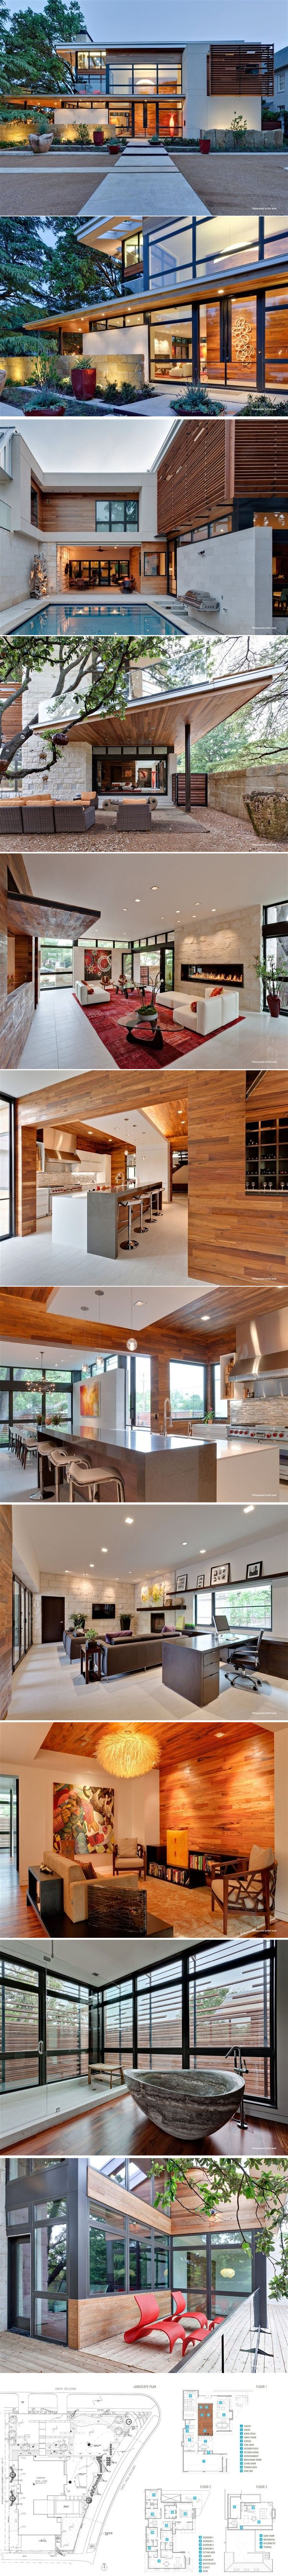 This home is truly amazing! Every room is perfectly balanced and designed